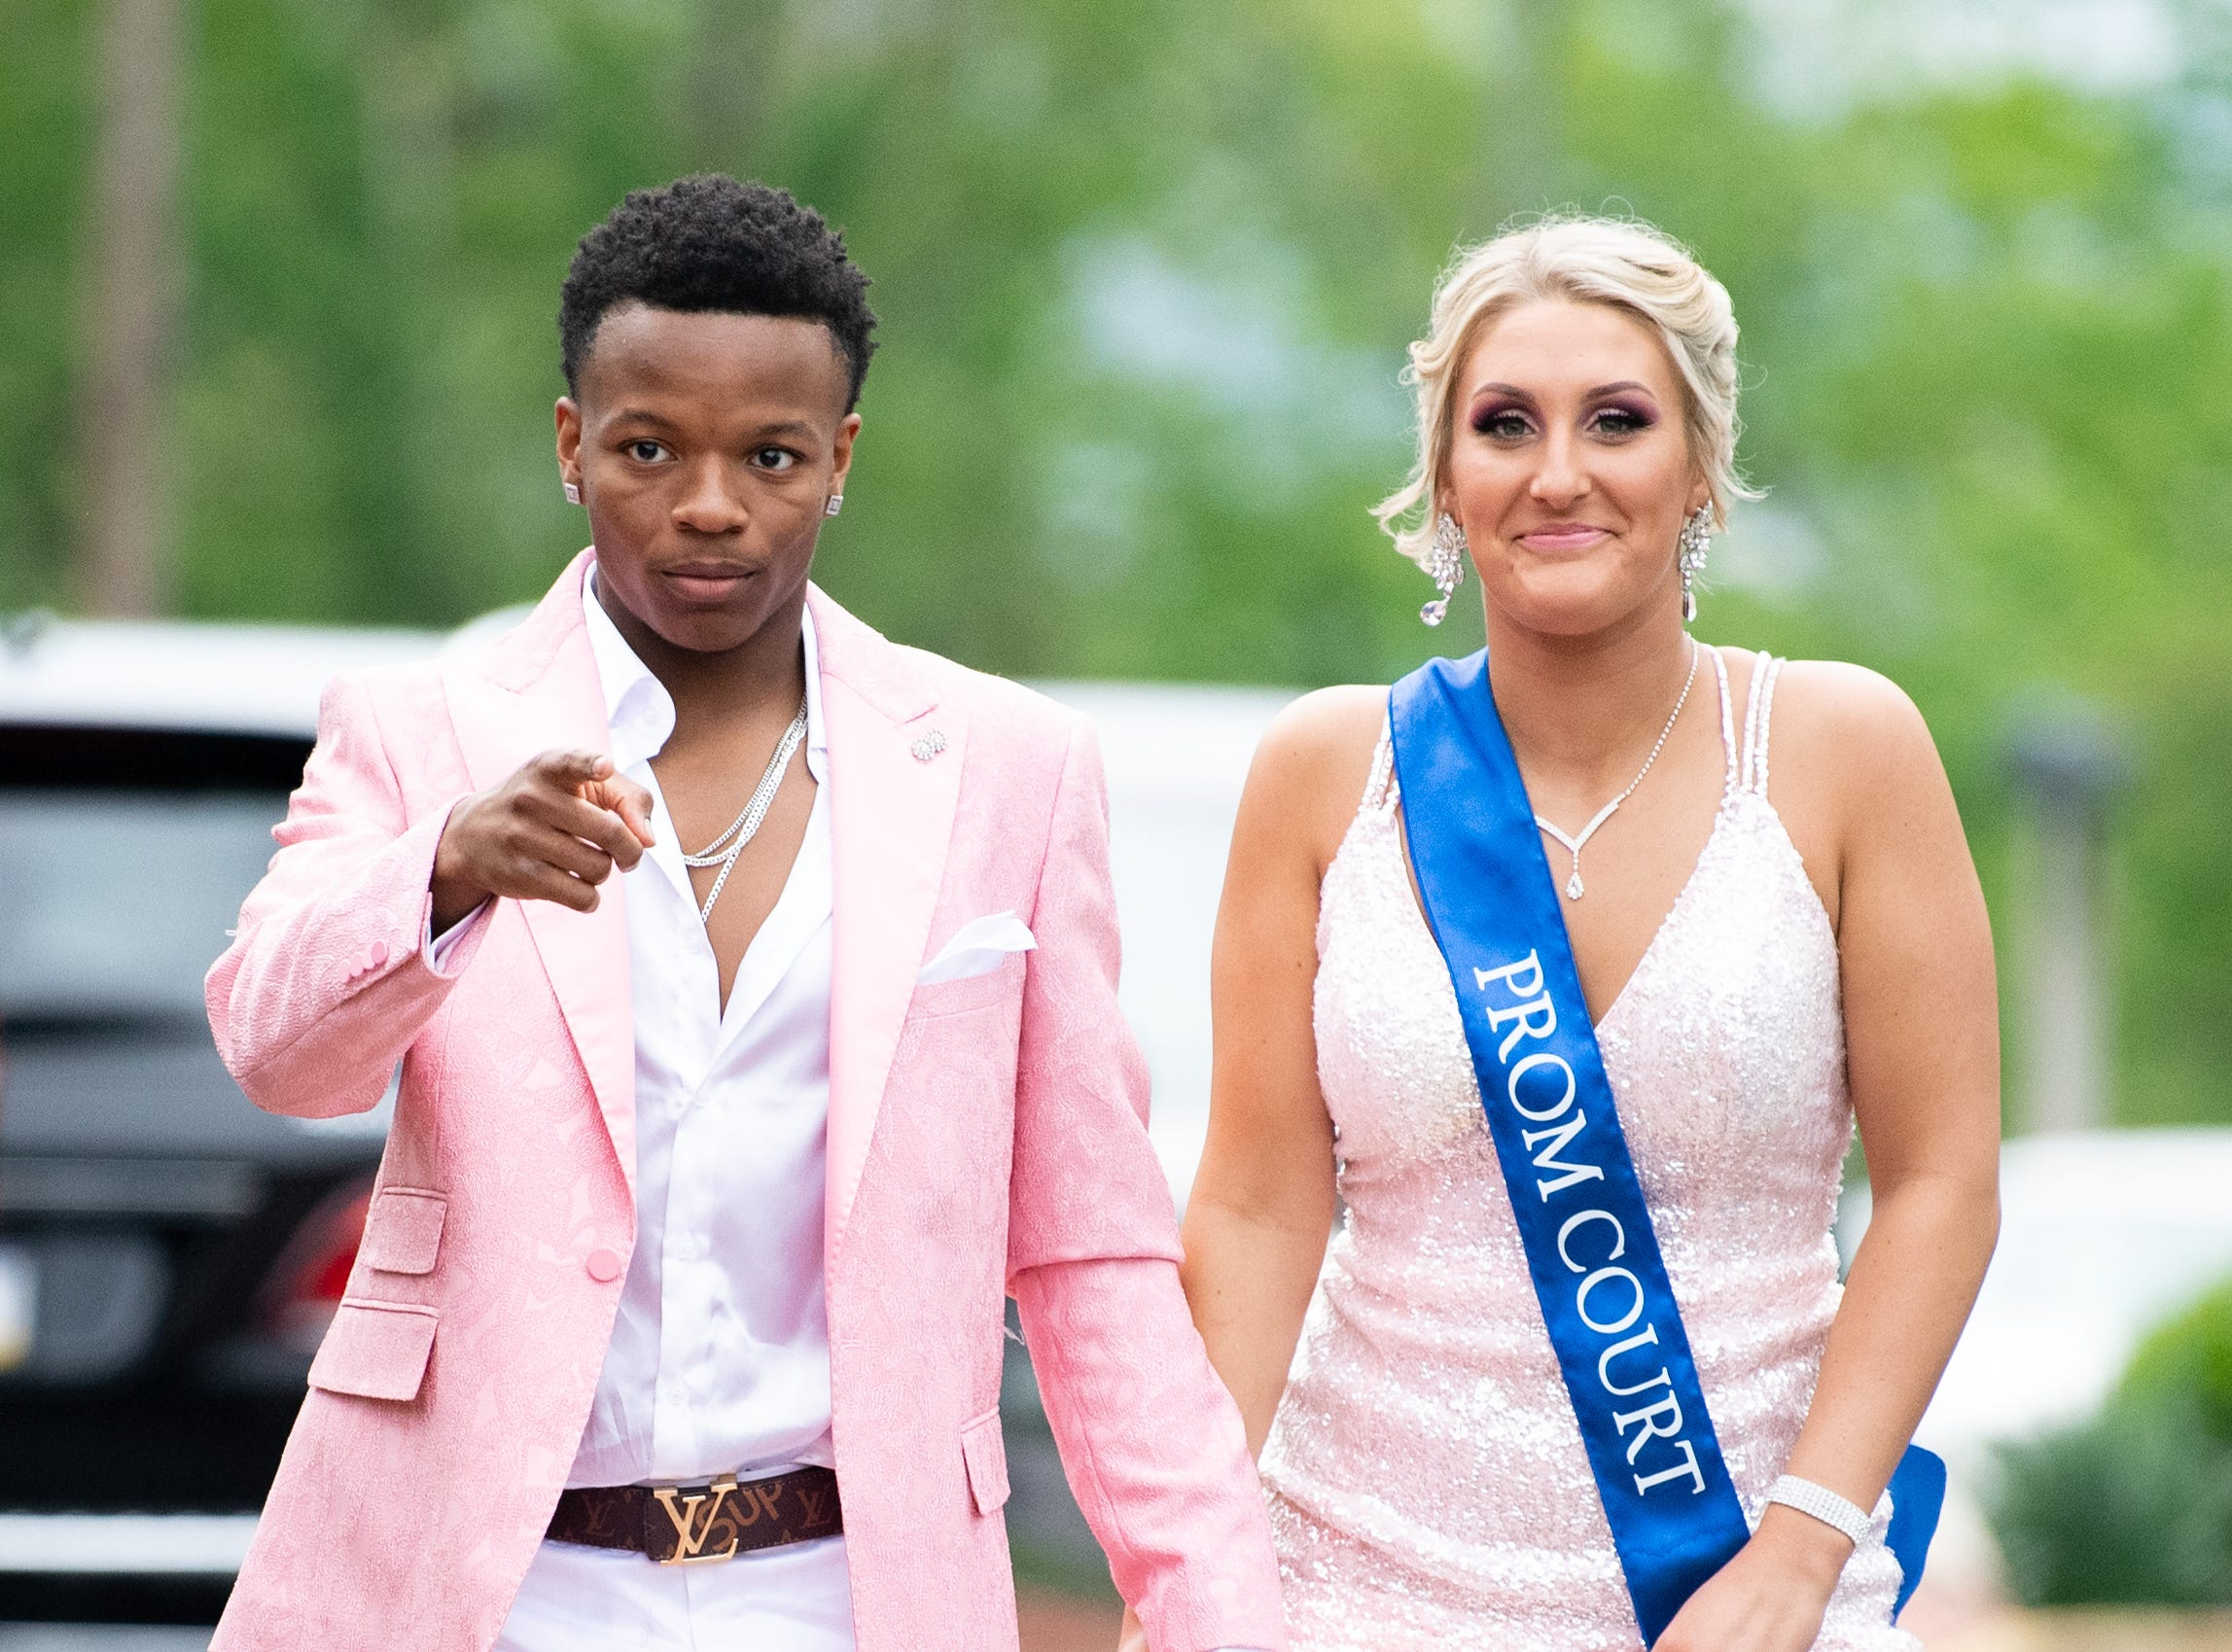 Students arrive at the Country Club of York for the West York prom, May 4, 2019.